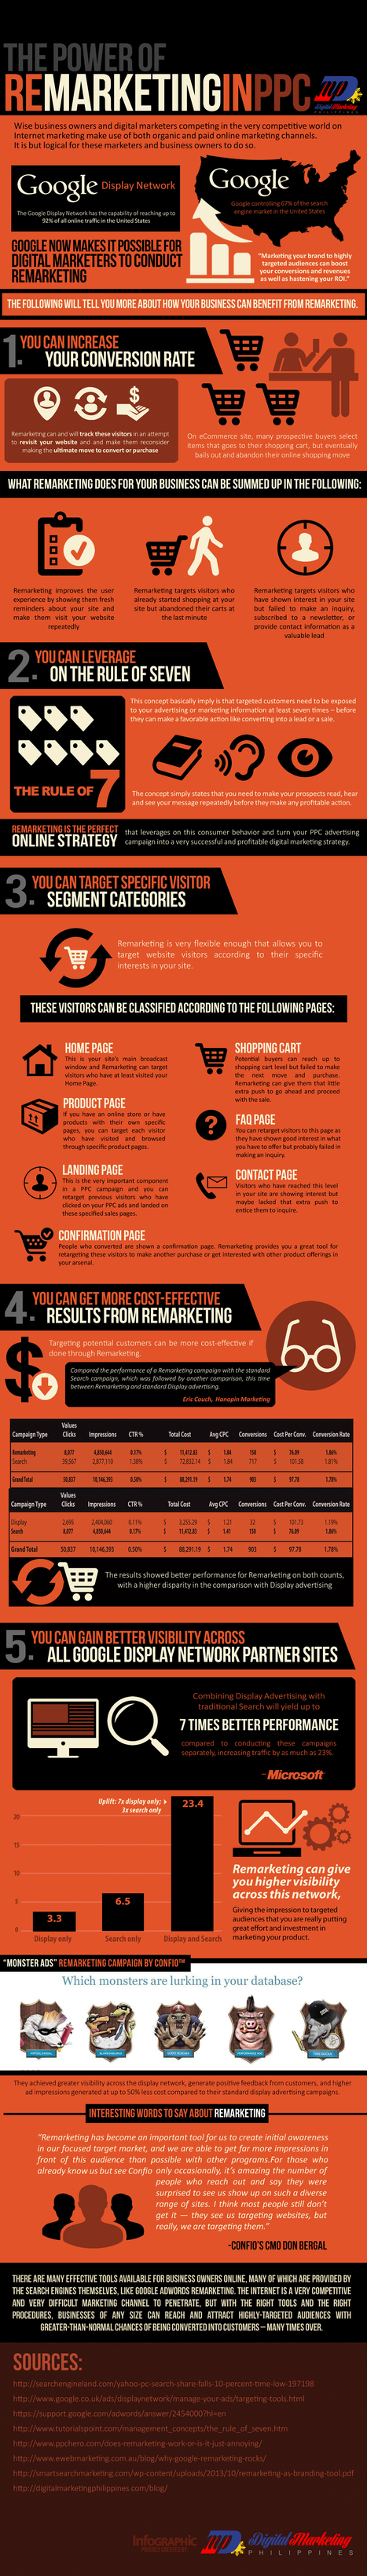 The Power of Remarketing in PPC (Infographic) - Digital Marketing Philippines | Digital Brand Marketing | Scoop.it